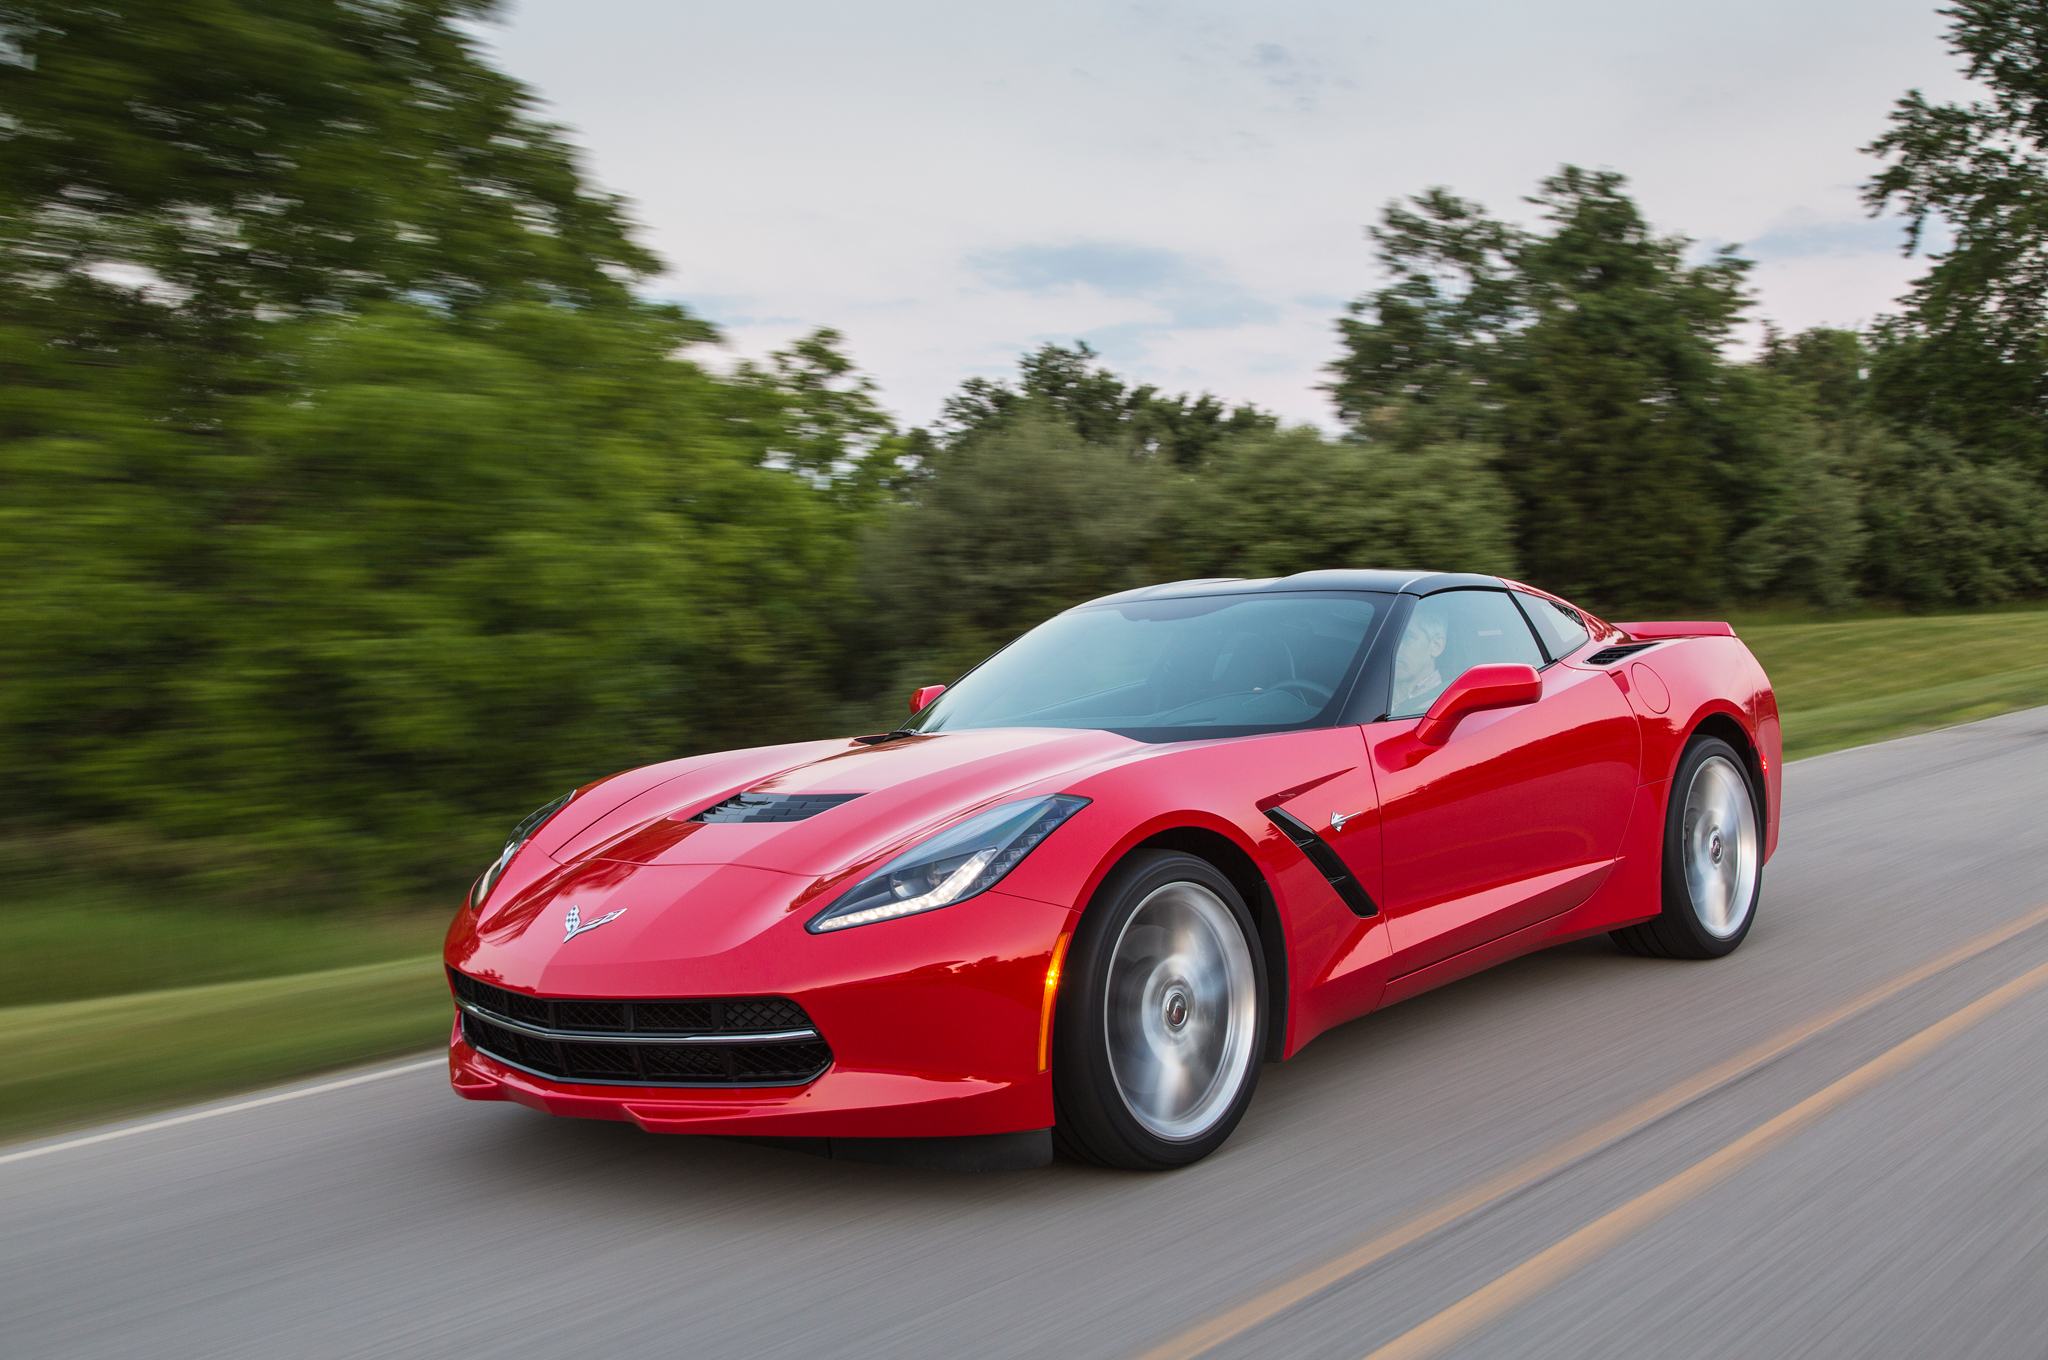 Chevrolet Corvette Stingray #16